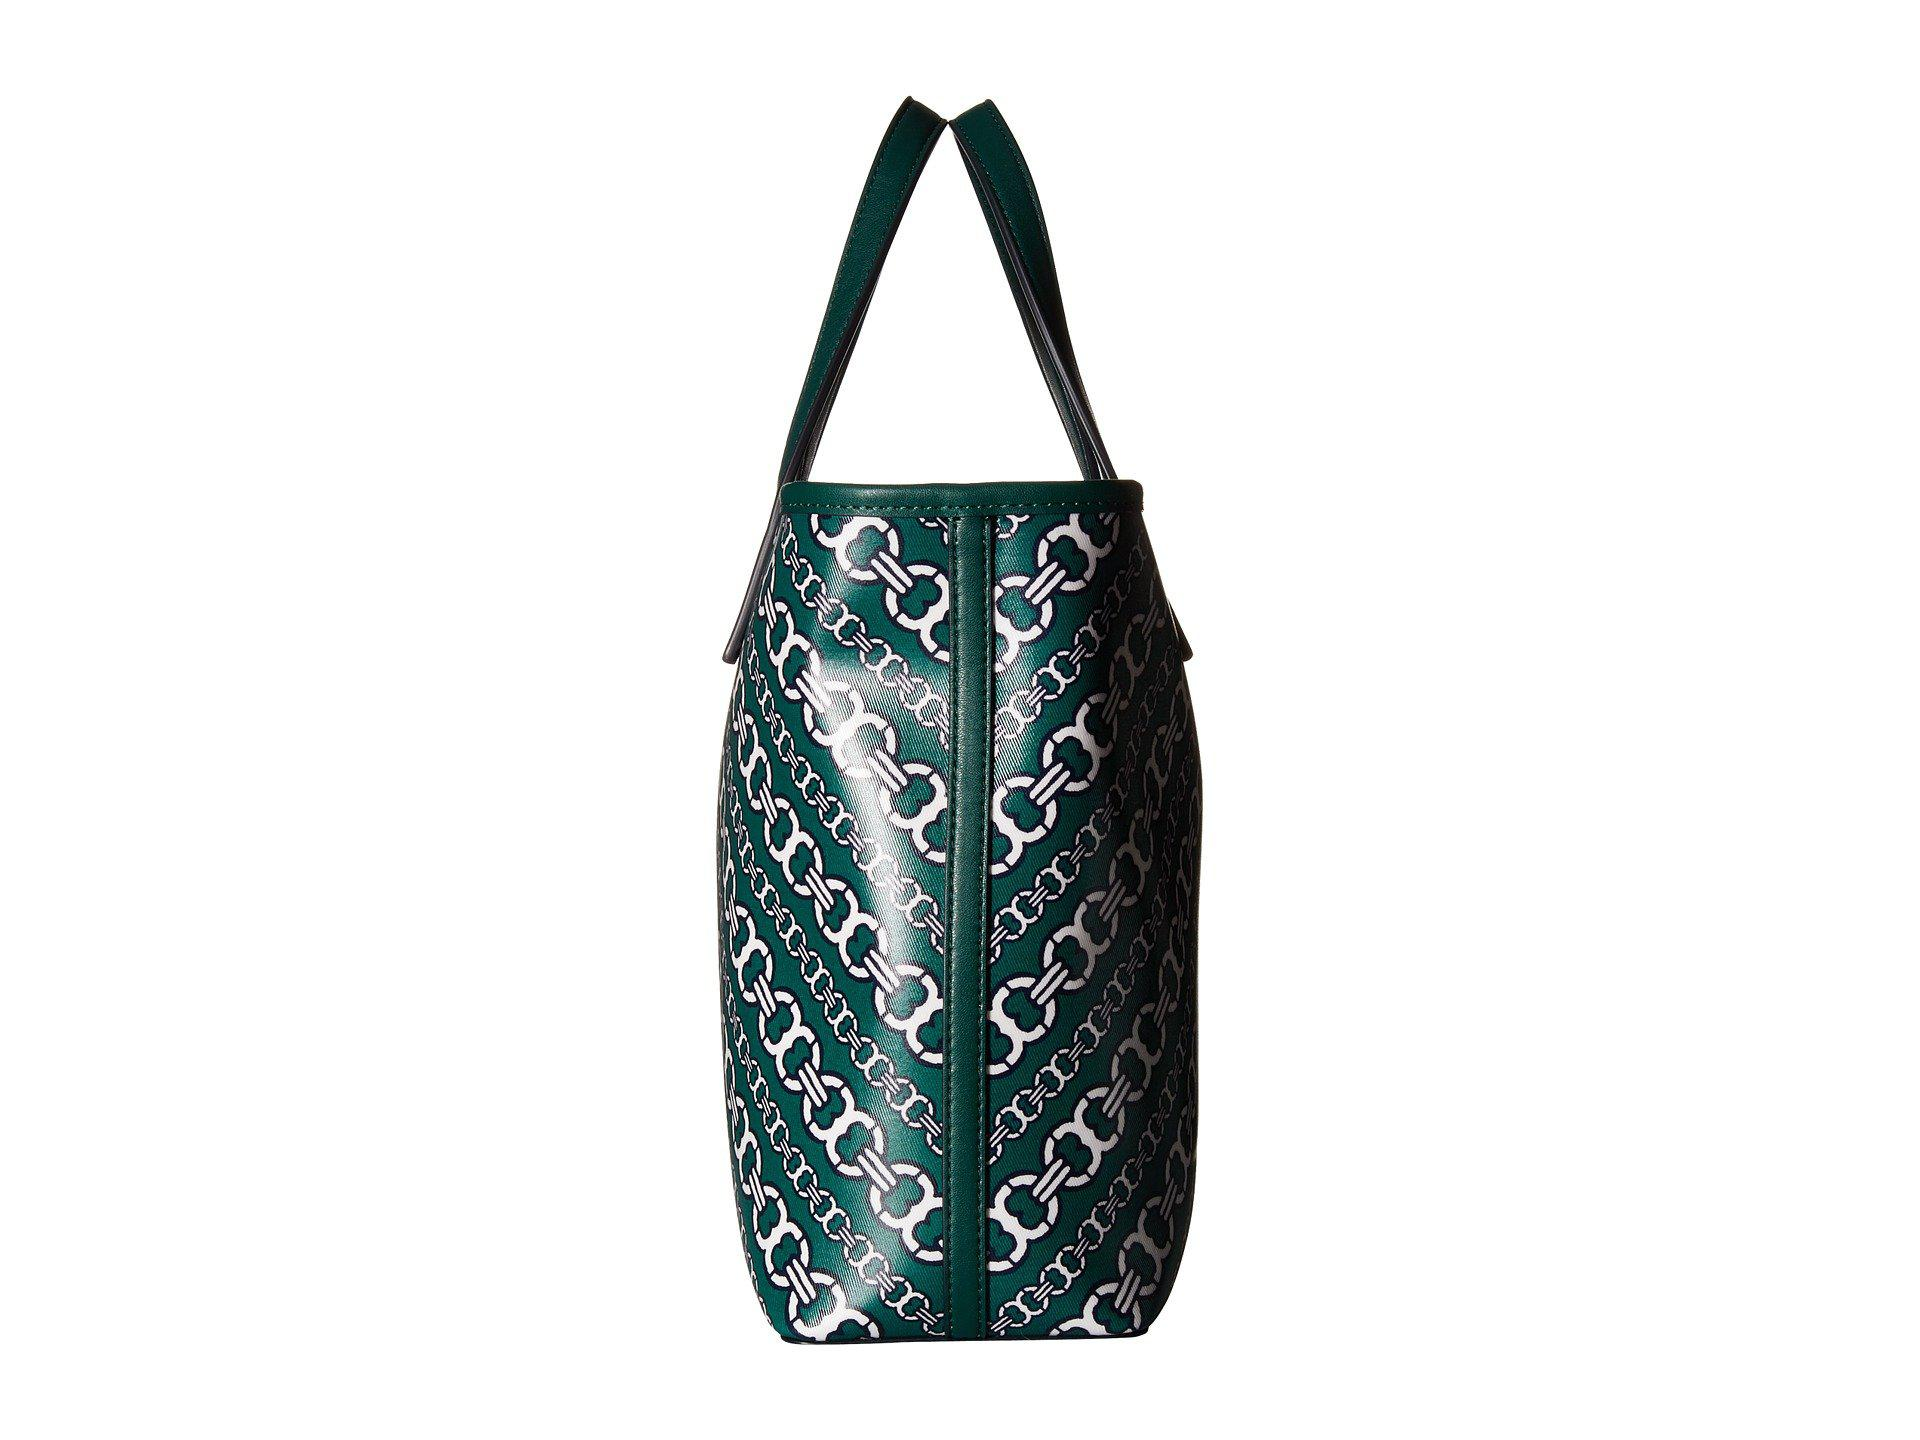 Givenchy Tassen Bijenkorf : Lyst tory burch gemini link small tote in green